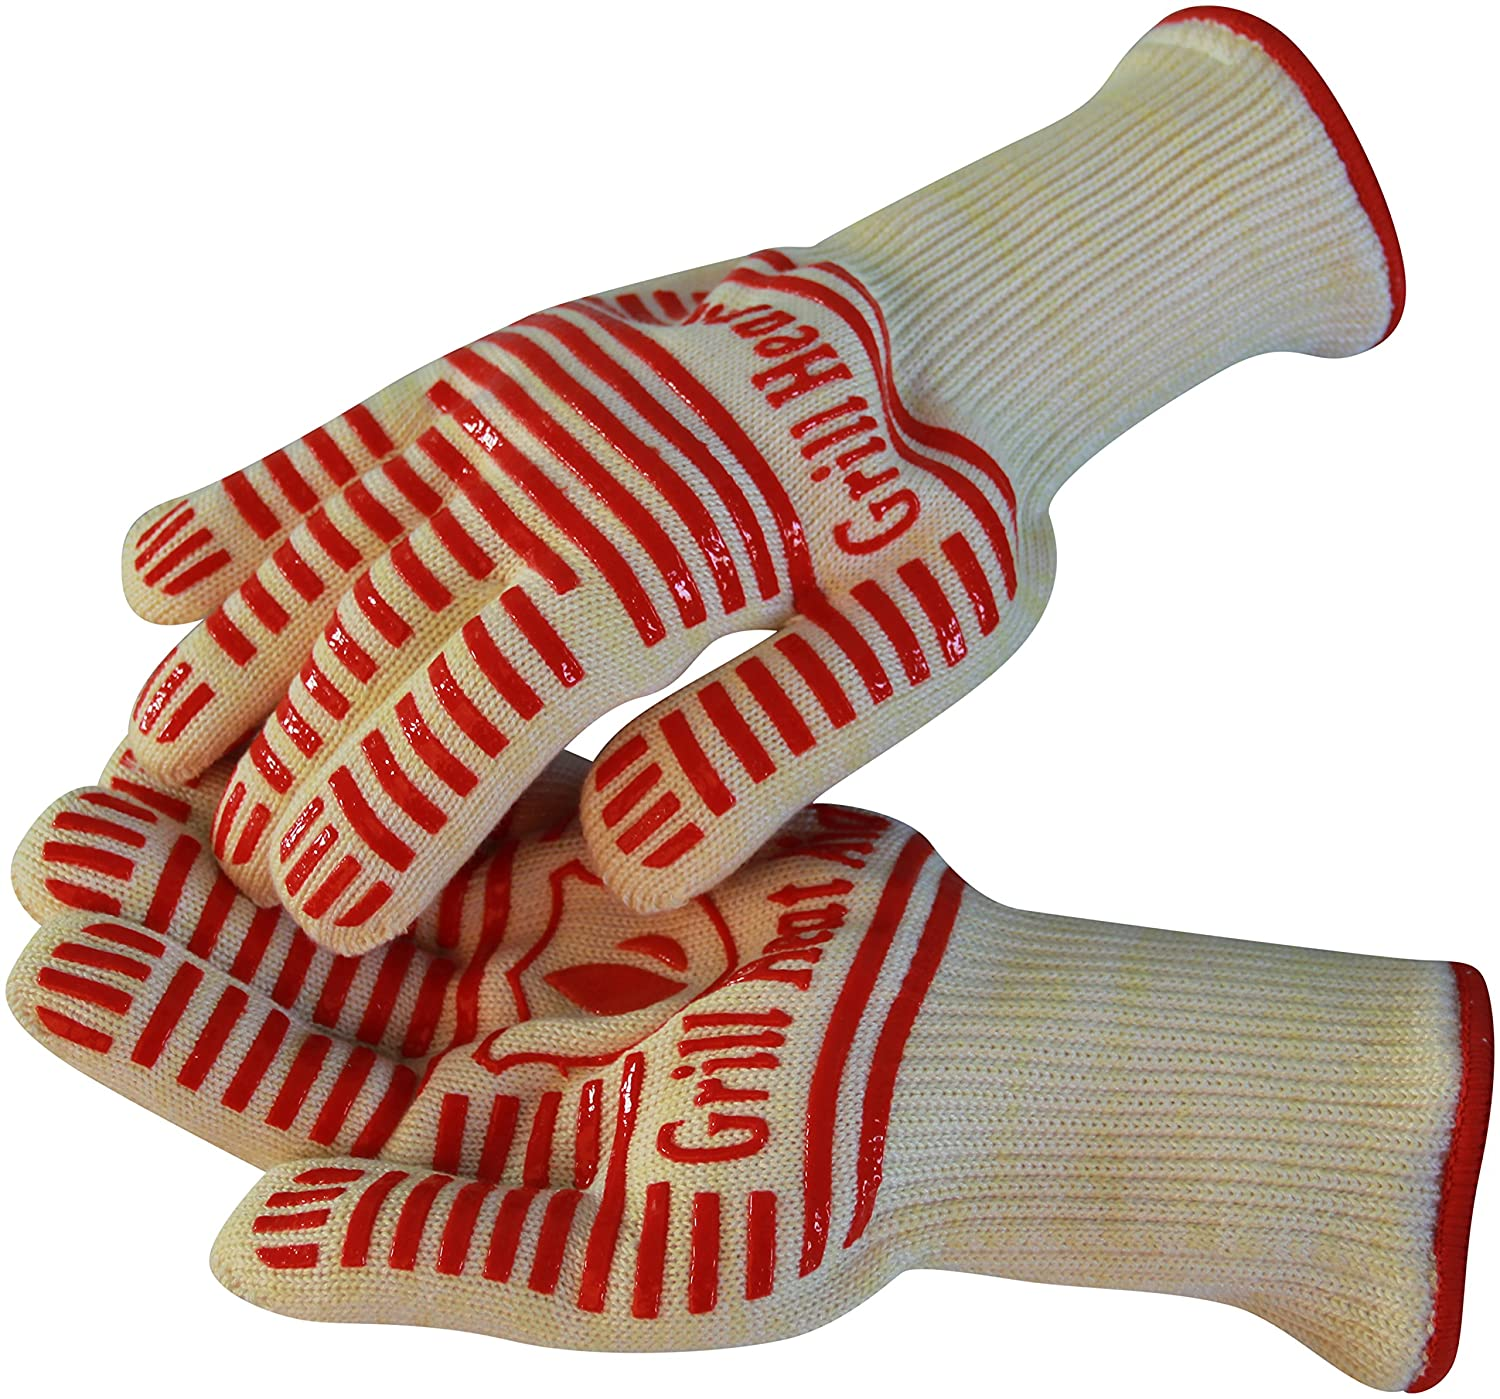 Extreme 932°F Heat Resistant - Light-Weight, Flexible BBQ Gloves - 100% Cotton Lining For Super Comfort